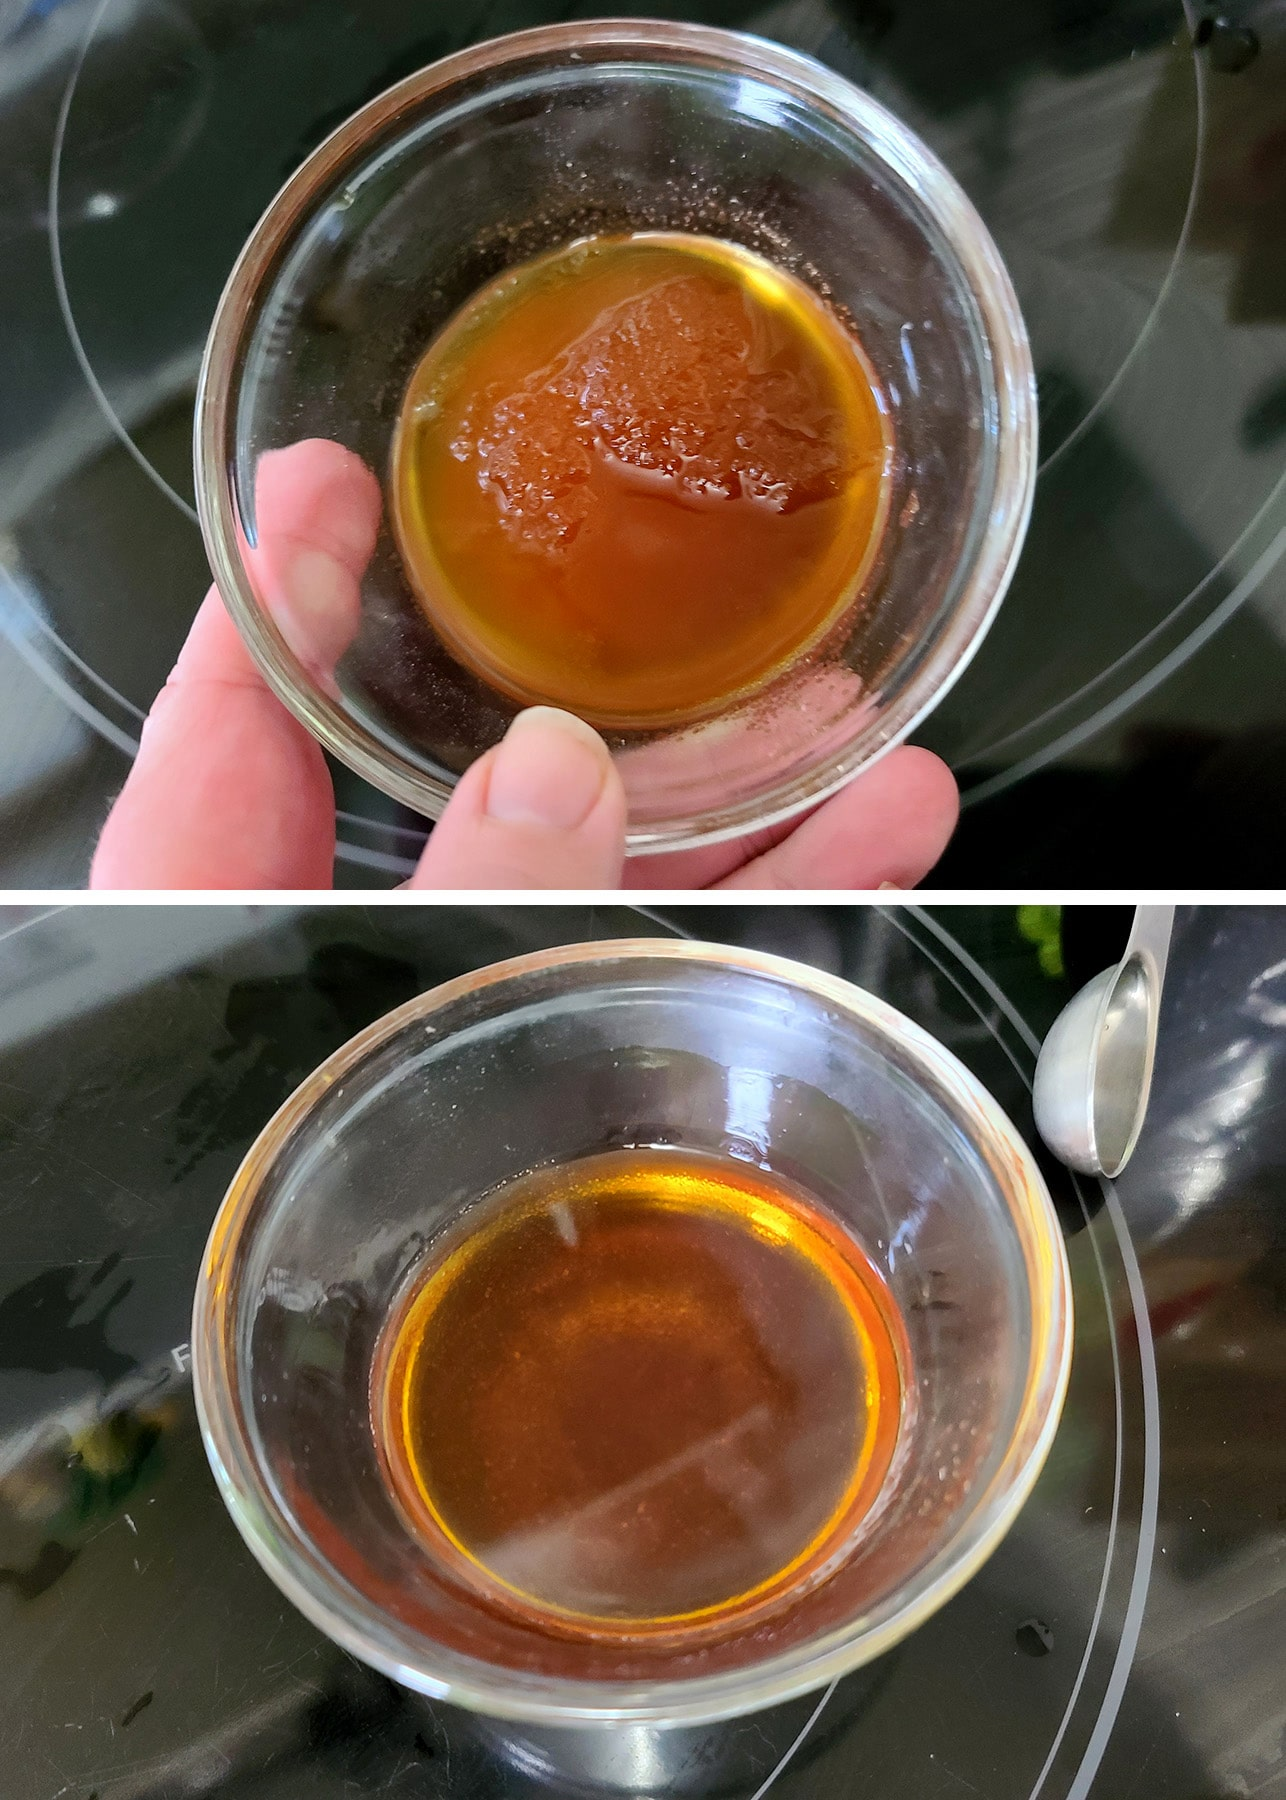 The gelatinized rum, before and after melting it.